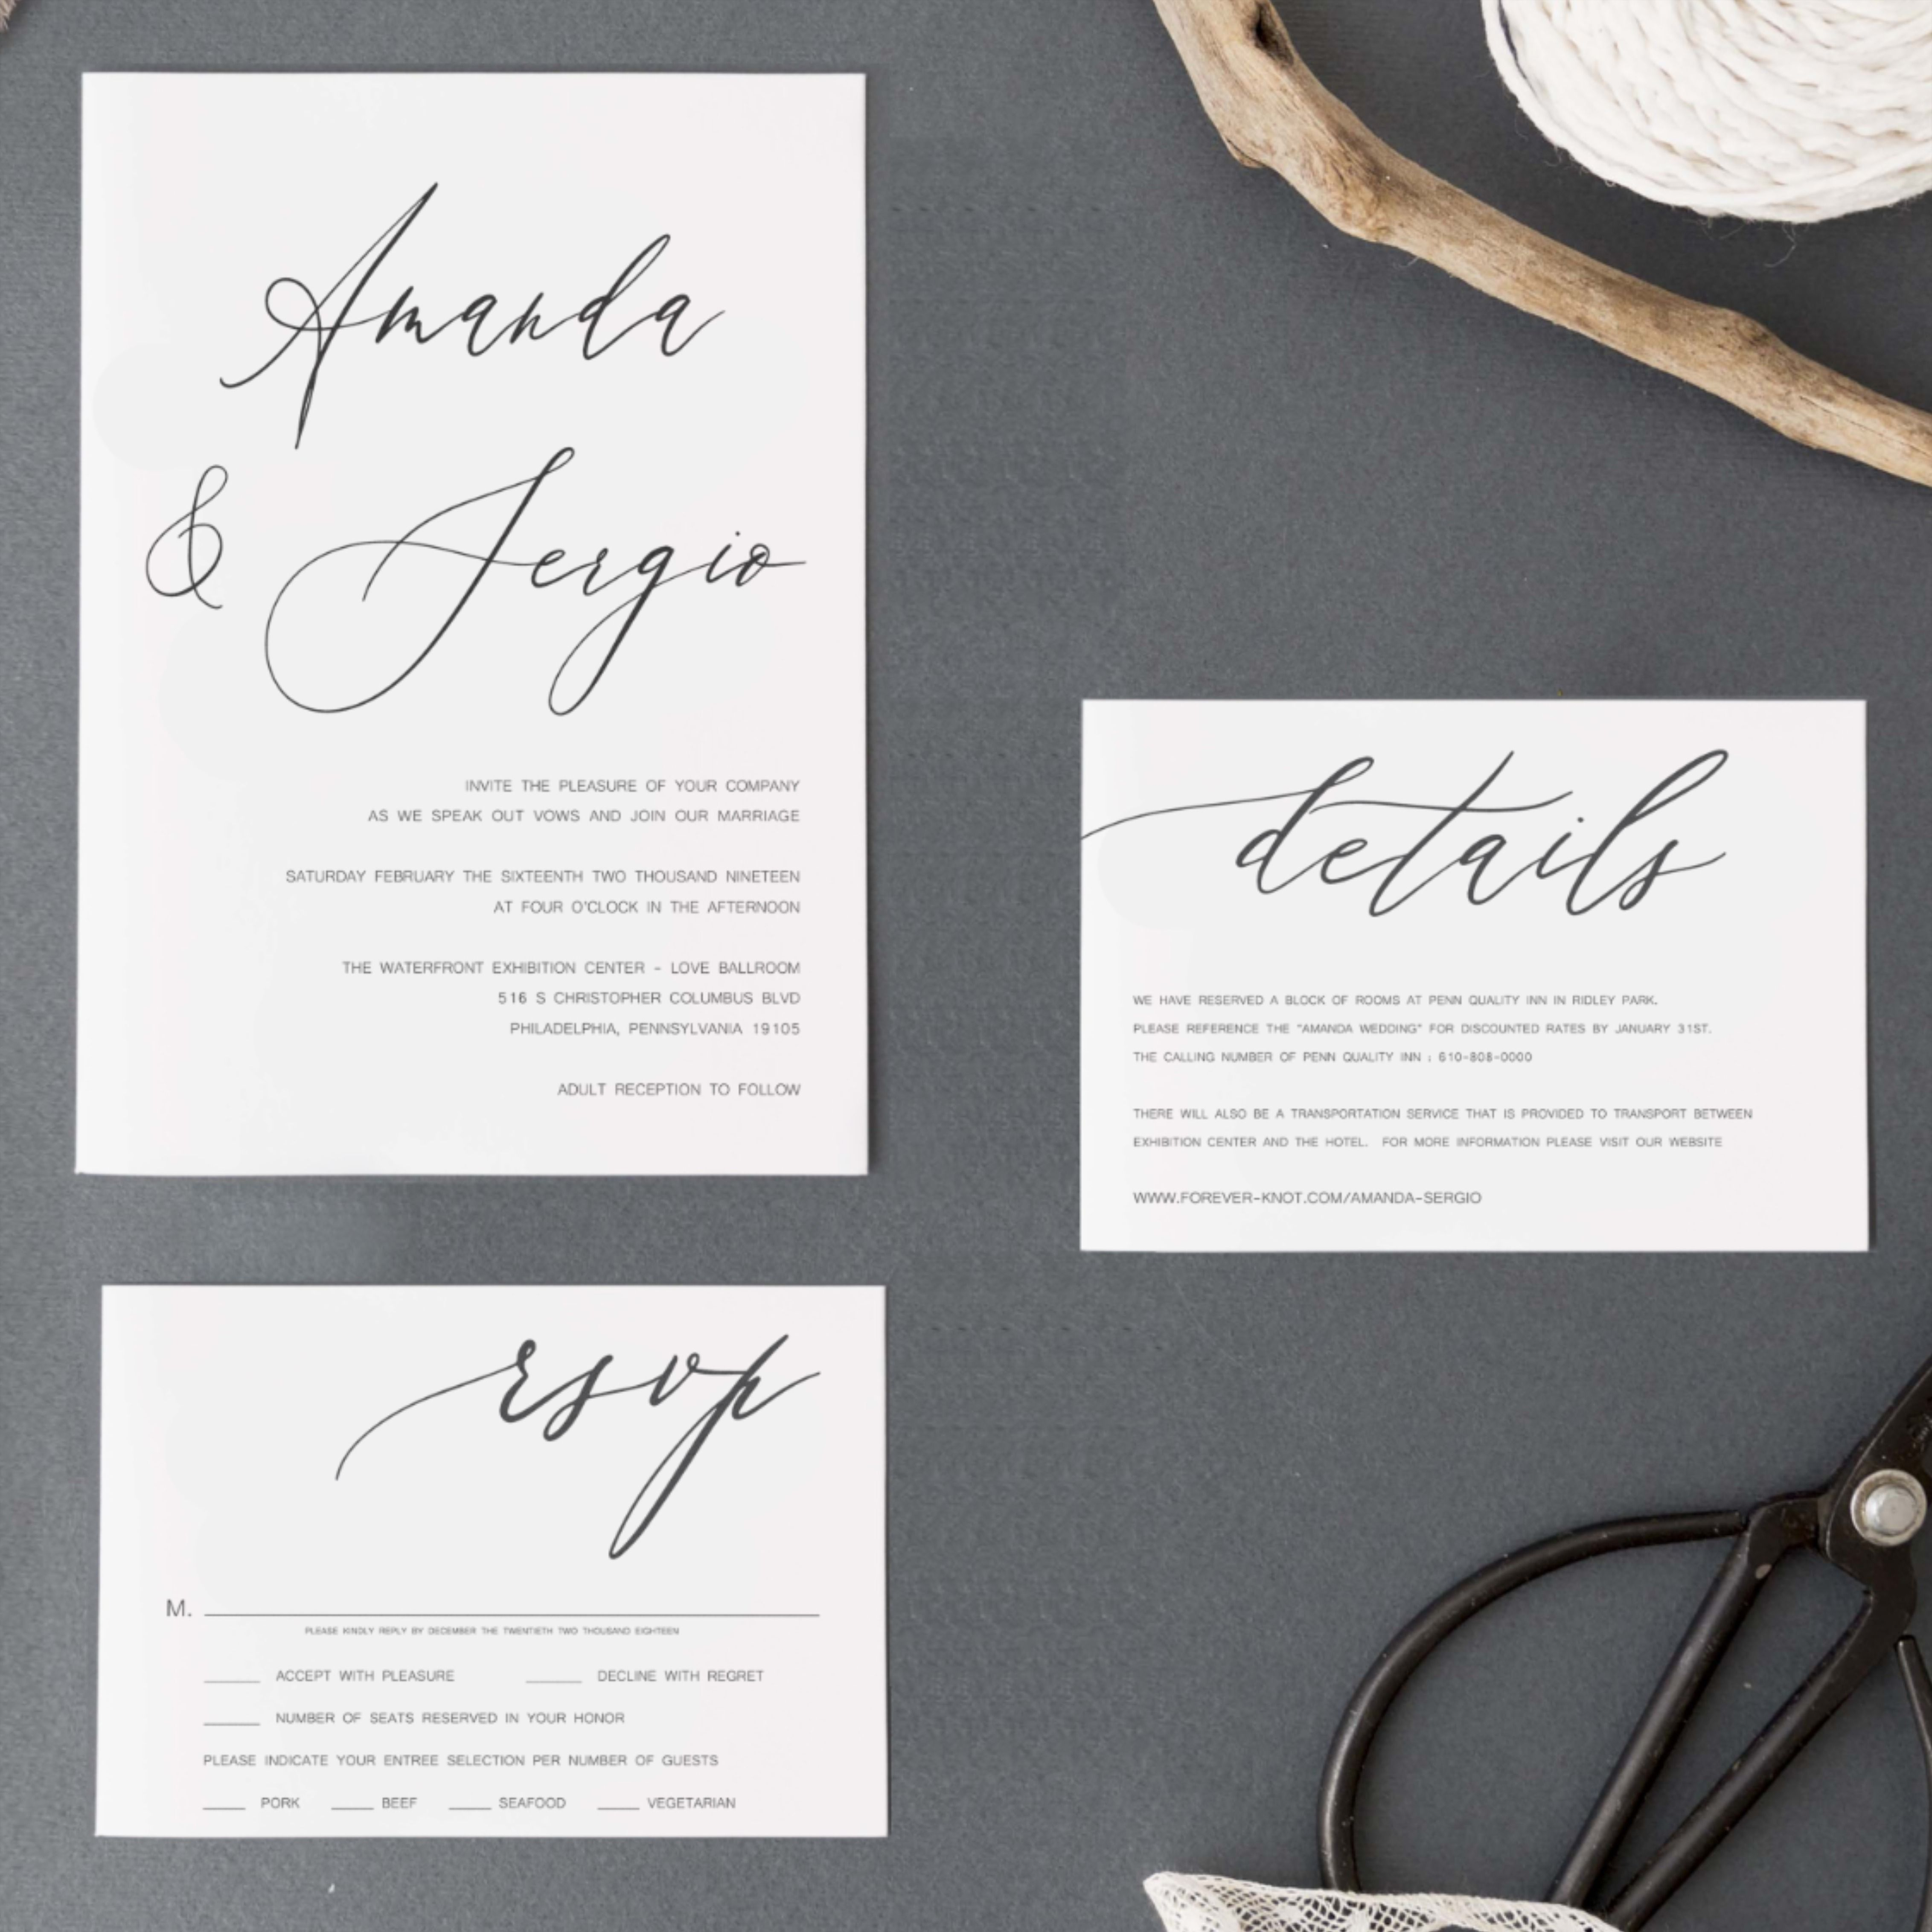 Printable Announcement Esme Wedding Save the Date Template Black and White Calligraphy Romantic Formal Calligraphy Wedding